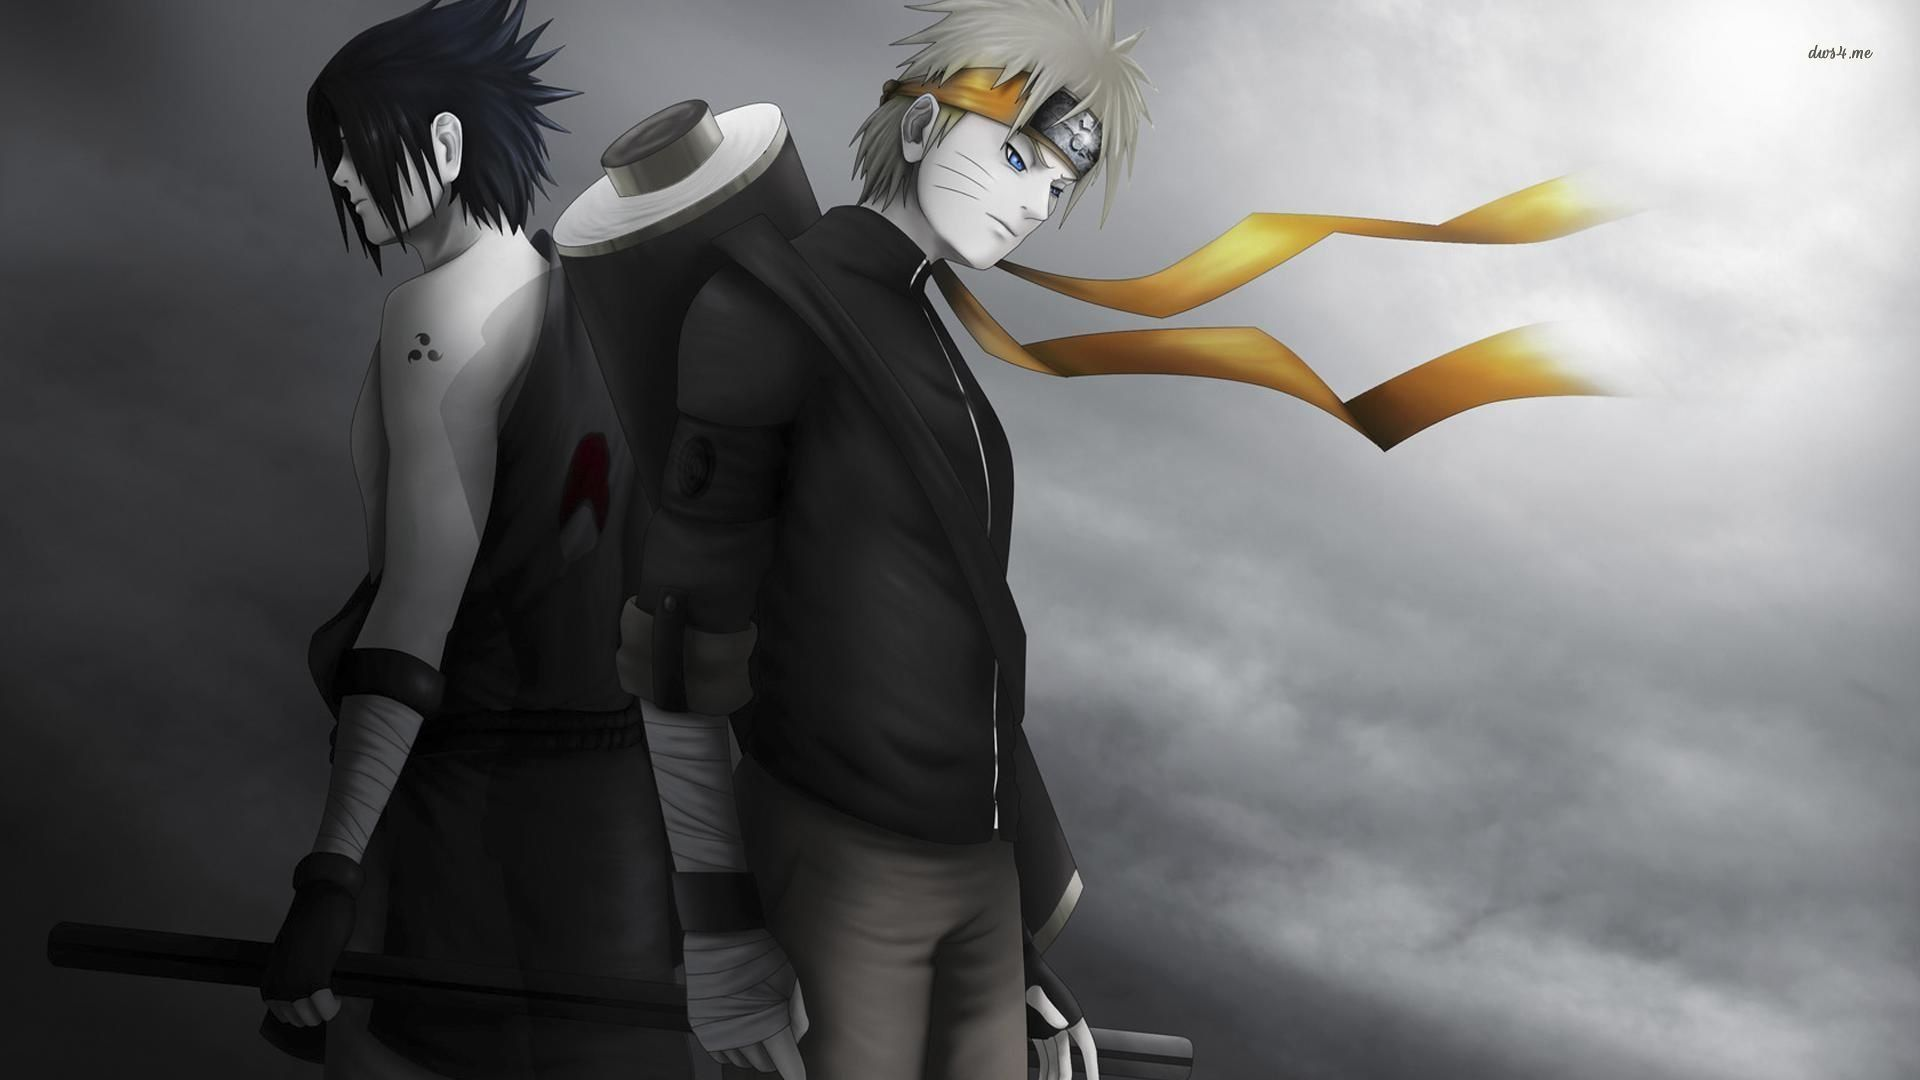 uzumaki clan images naruto uzumaki hd wallpaper and background